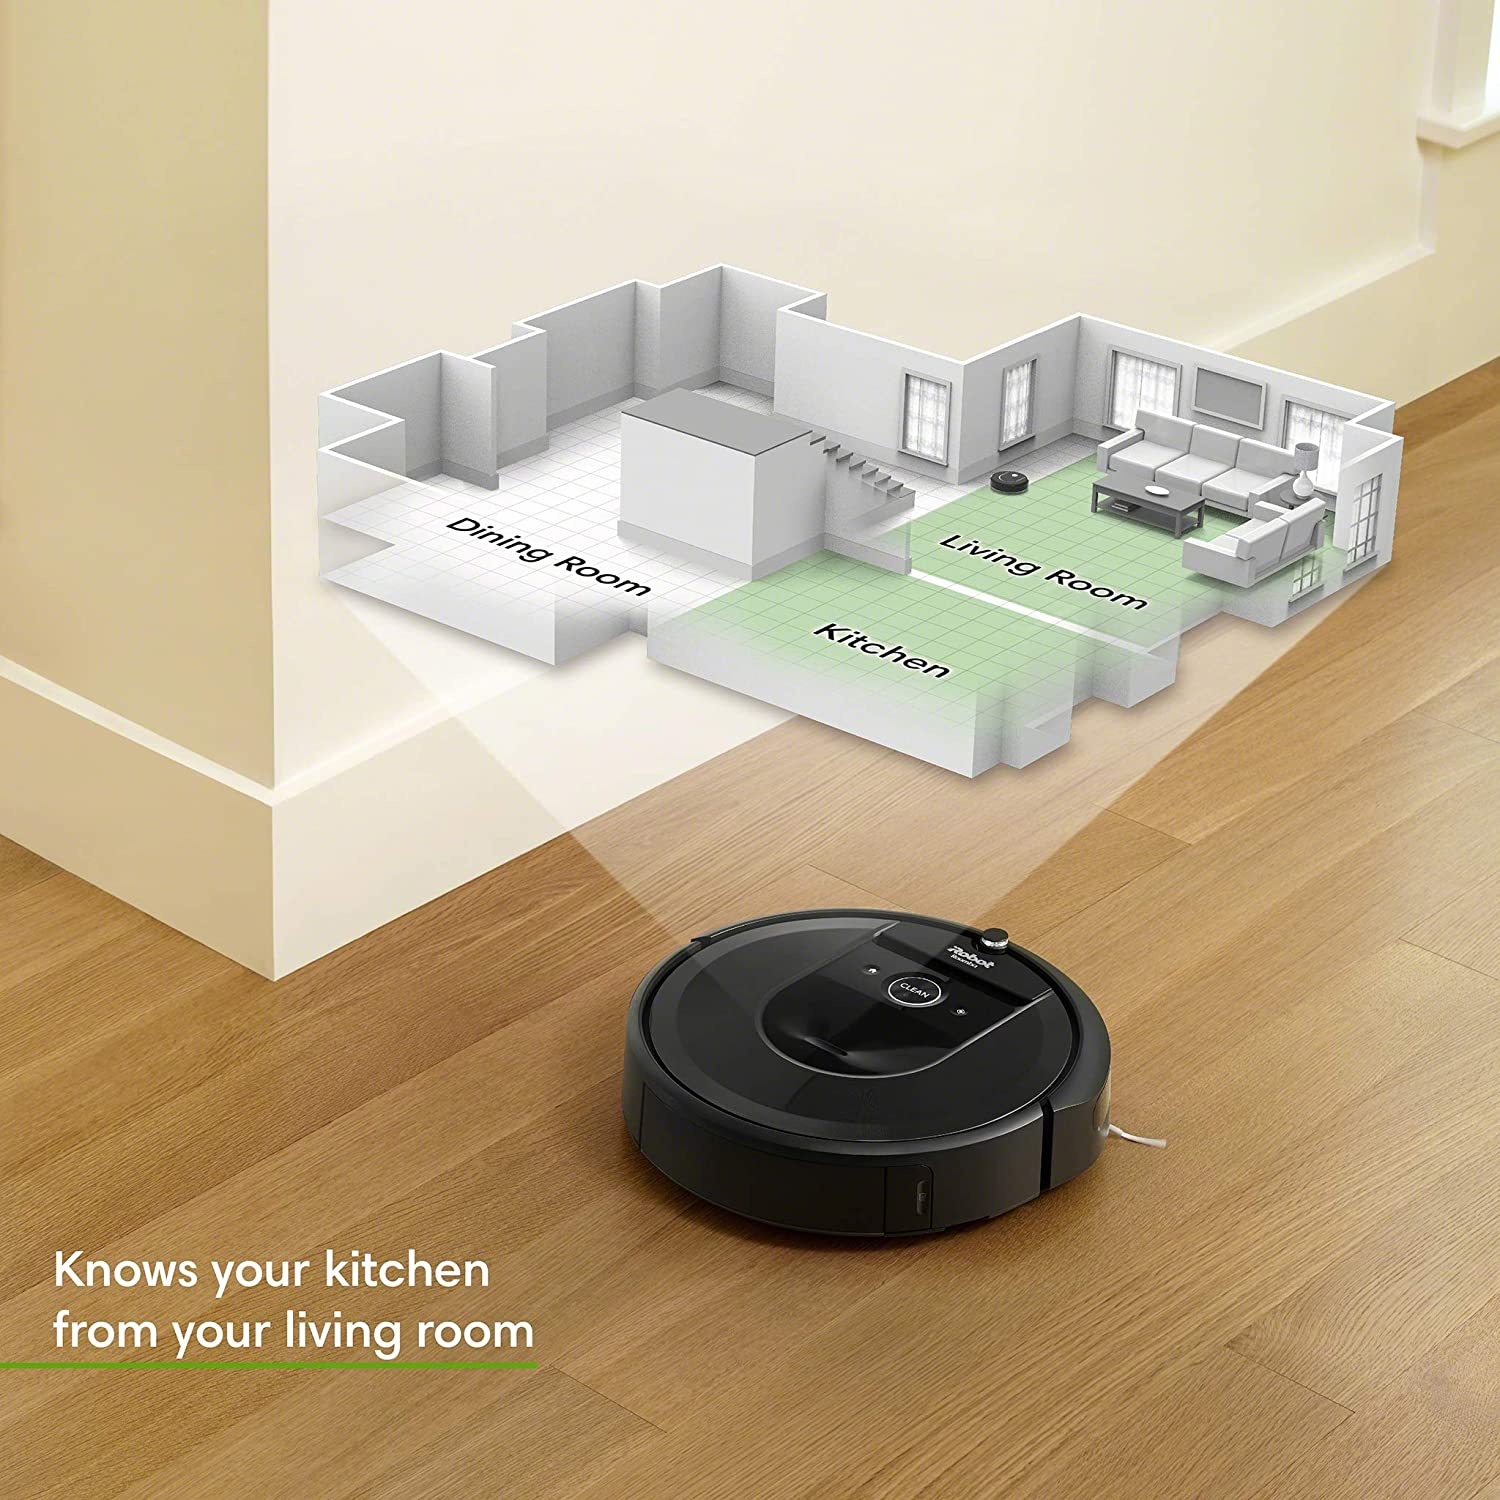 iRobot Roomba i7 7150 Robot Vacuum- Wi-Fi Connected, Smart Mapping, Works with Alexa, Ideal for Pet Hair, Carpets, Hard Floors